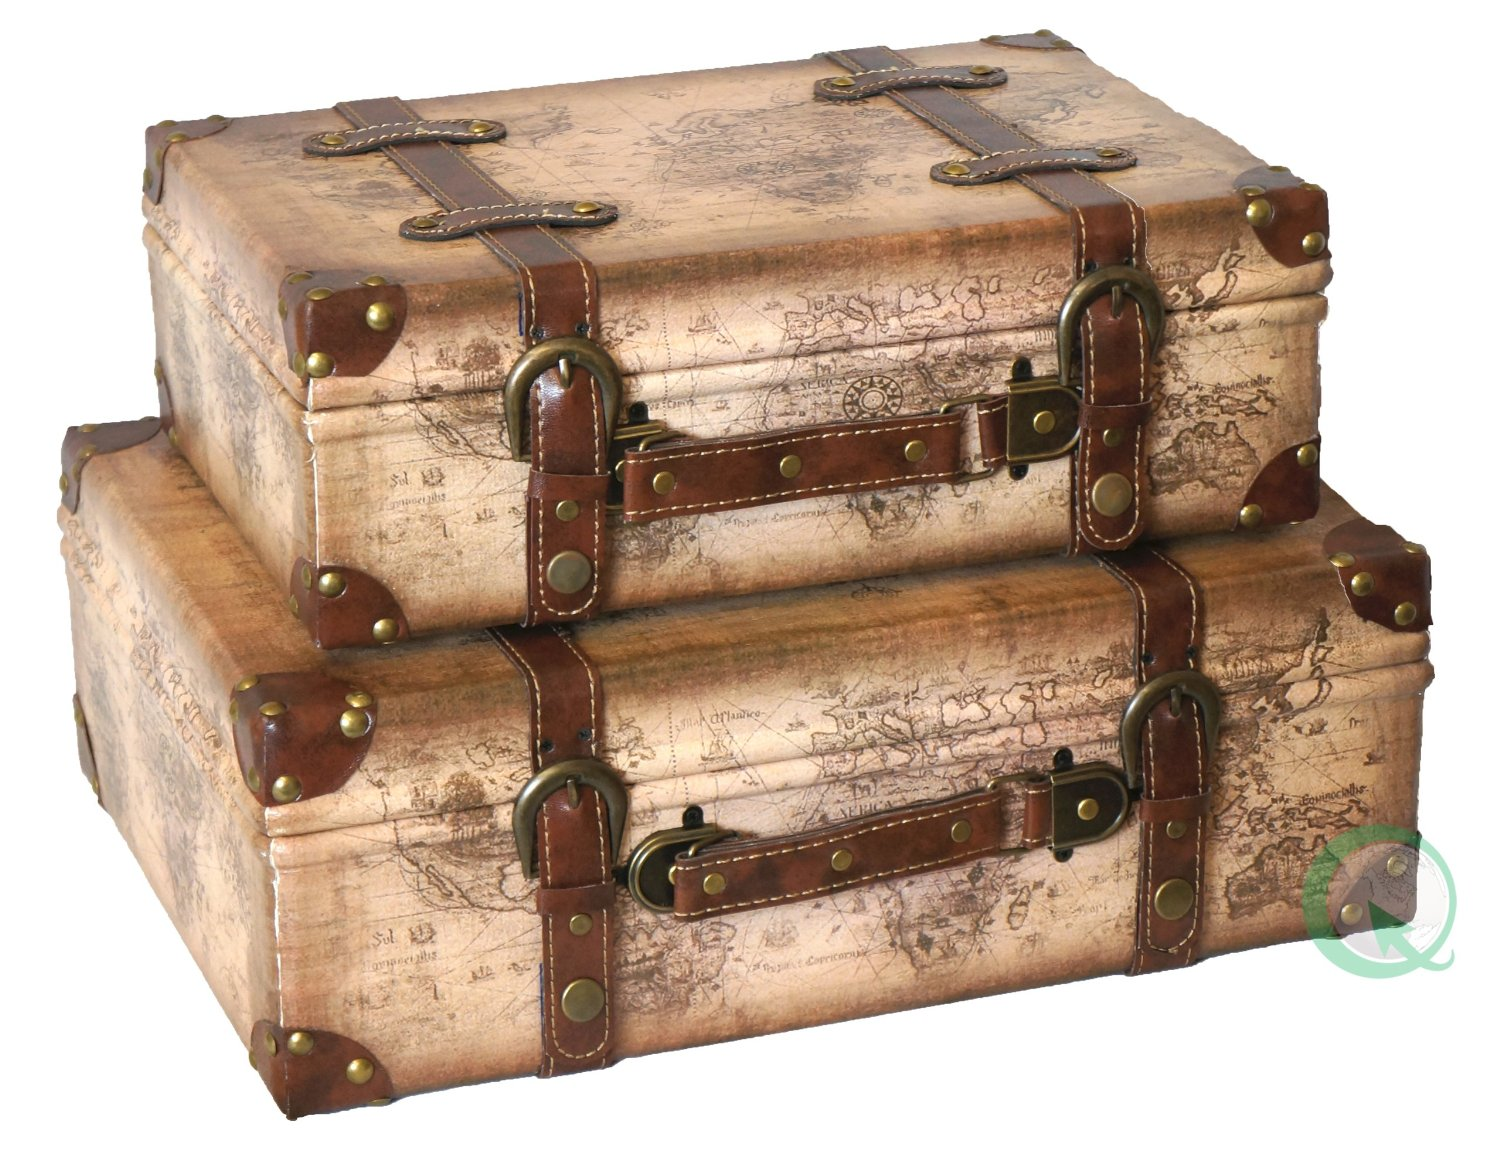 Vintage Decorative Suitcases Vintage Suitcases Adorable Home